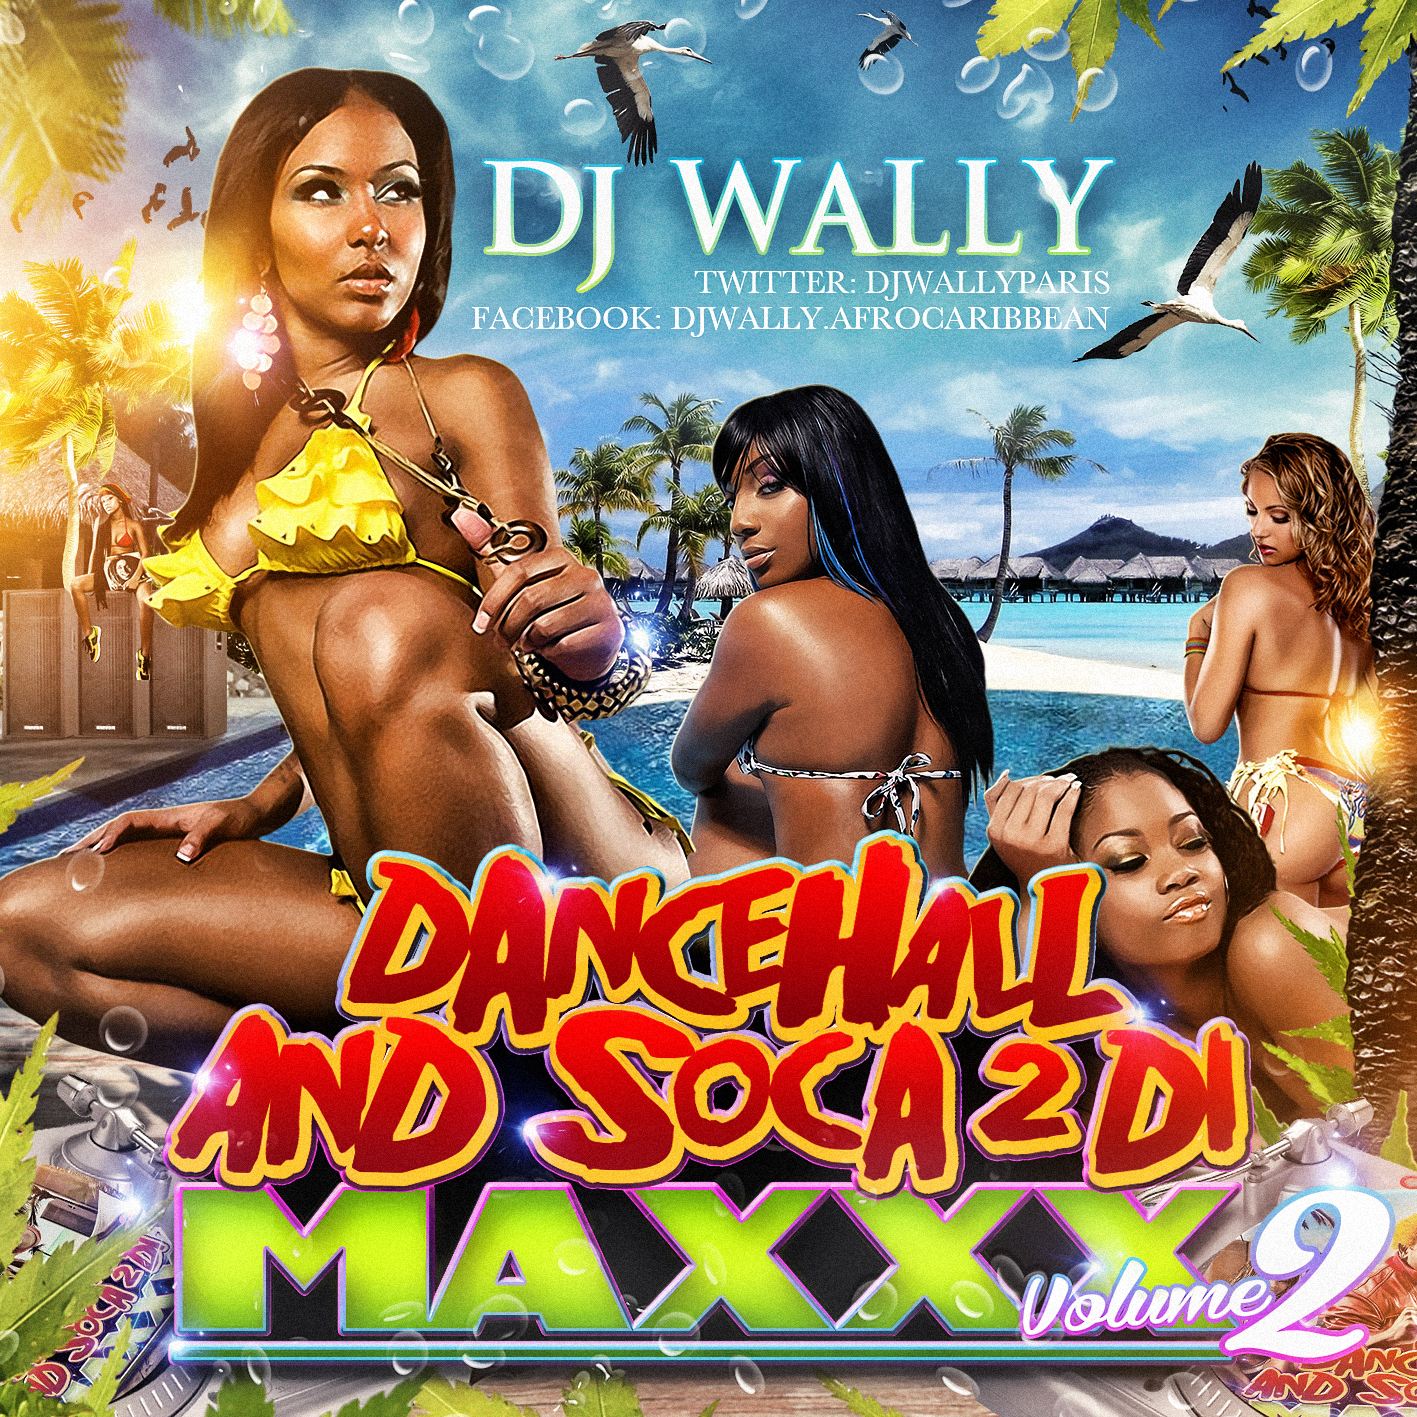 dj-wally-dancehall-and-soca-to-di-maxxx-volume-2-Cover-Artwork